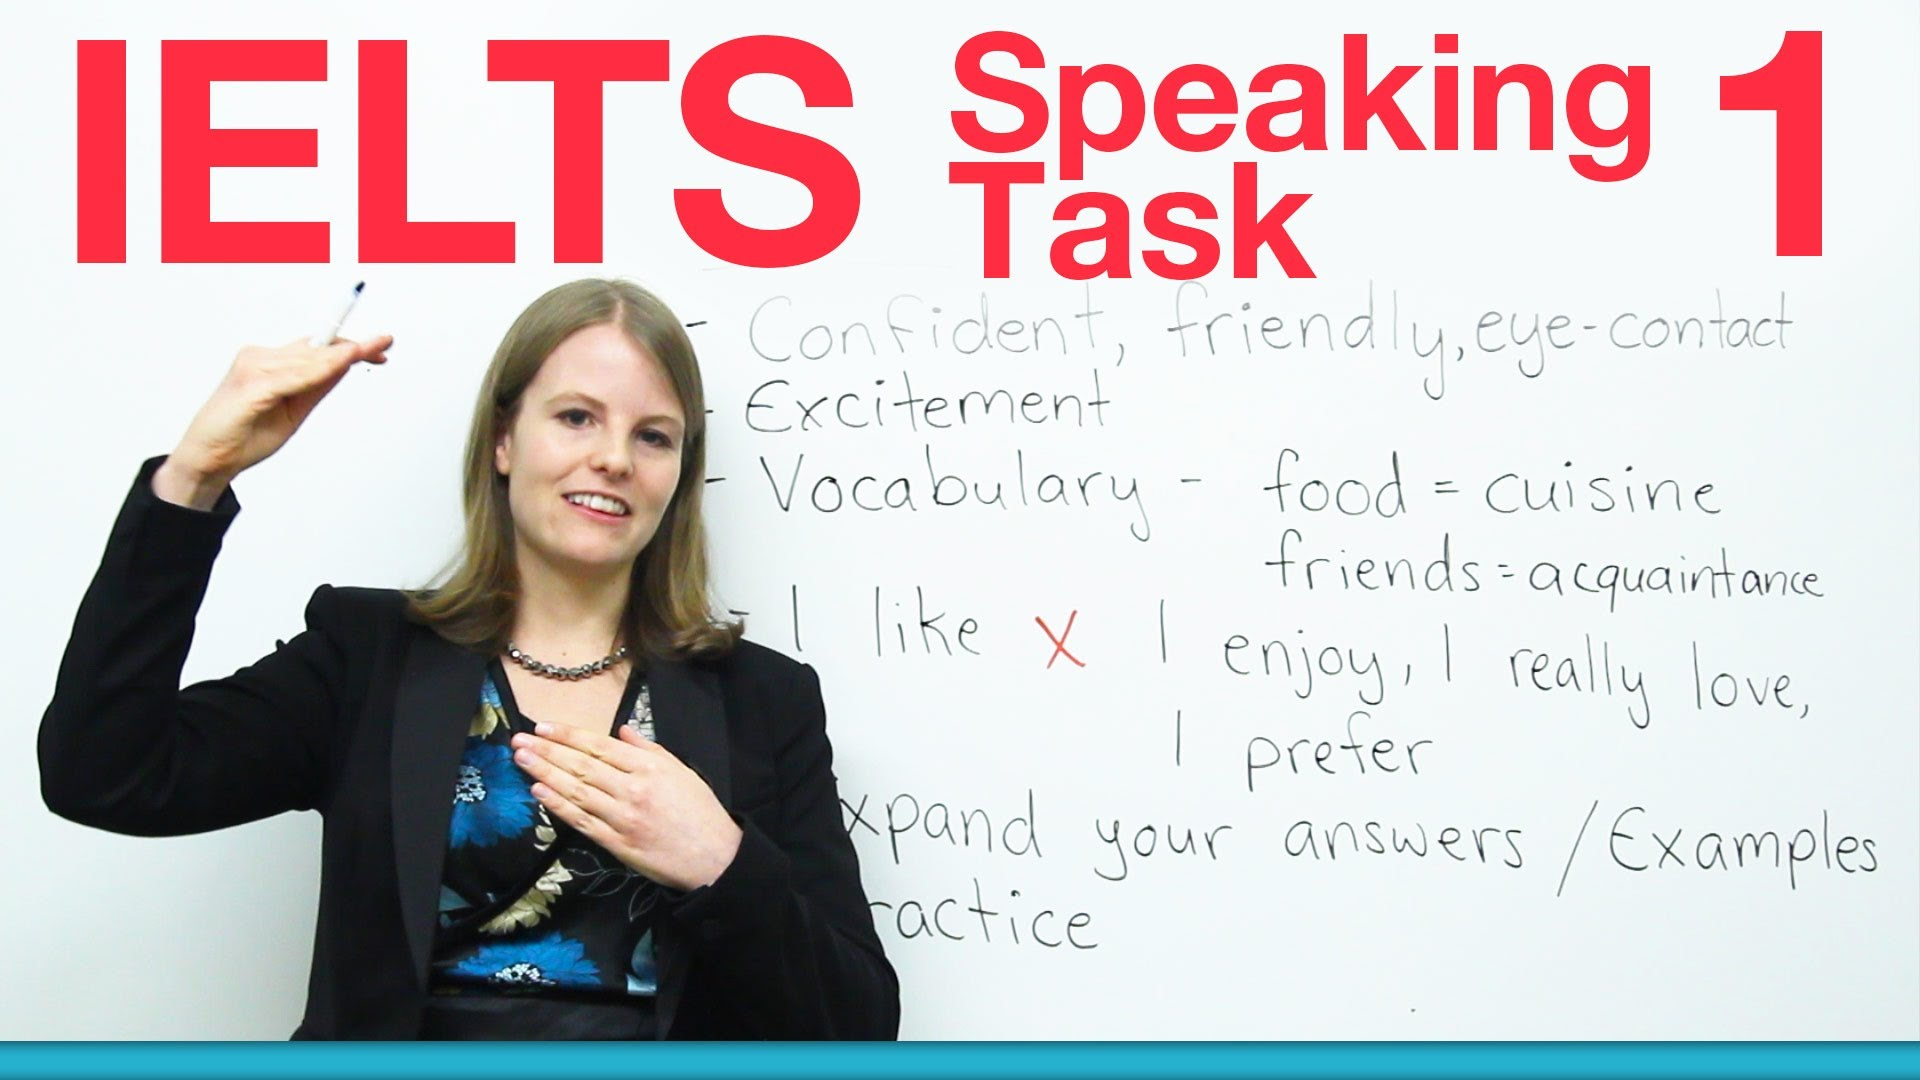 How to Sound More Confident in IELTS Speaking?